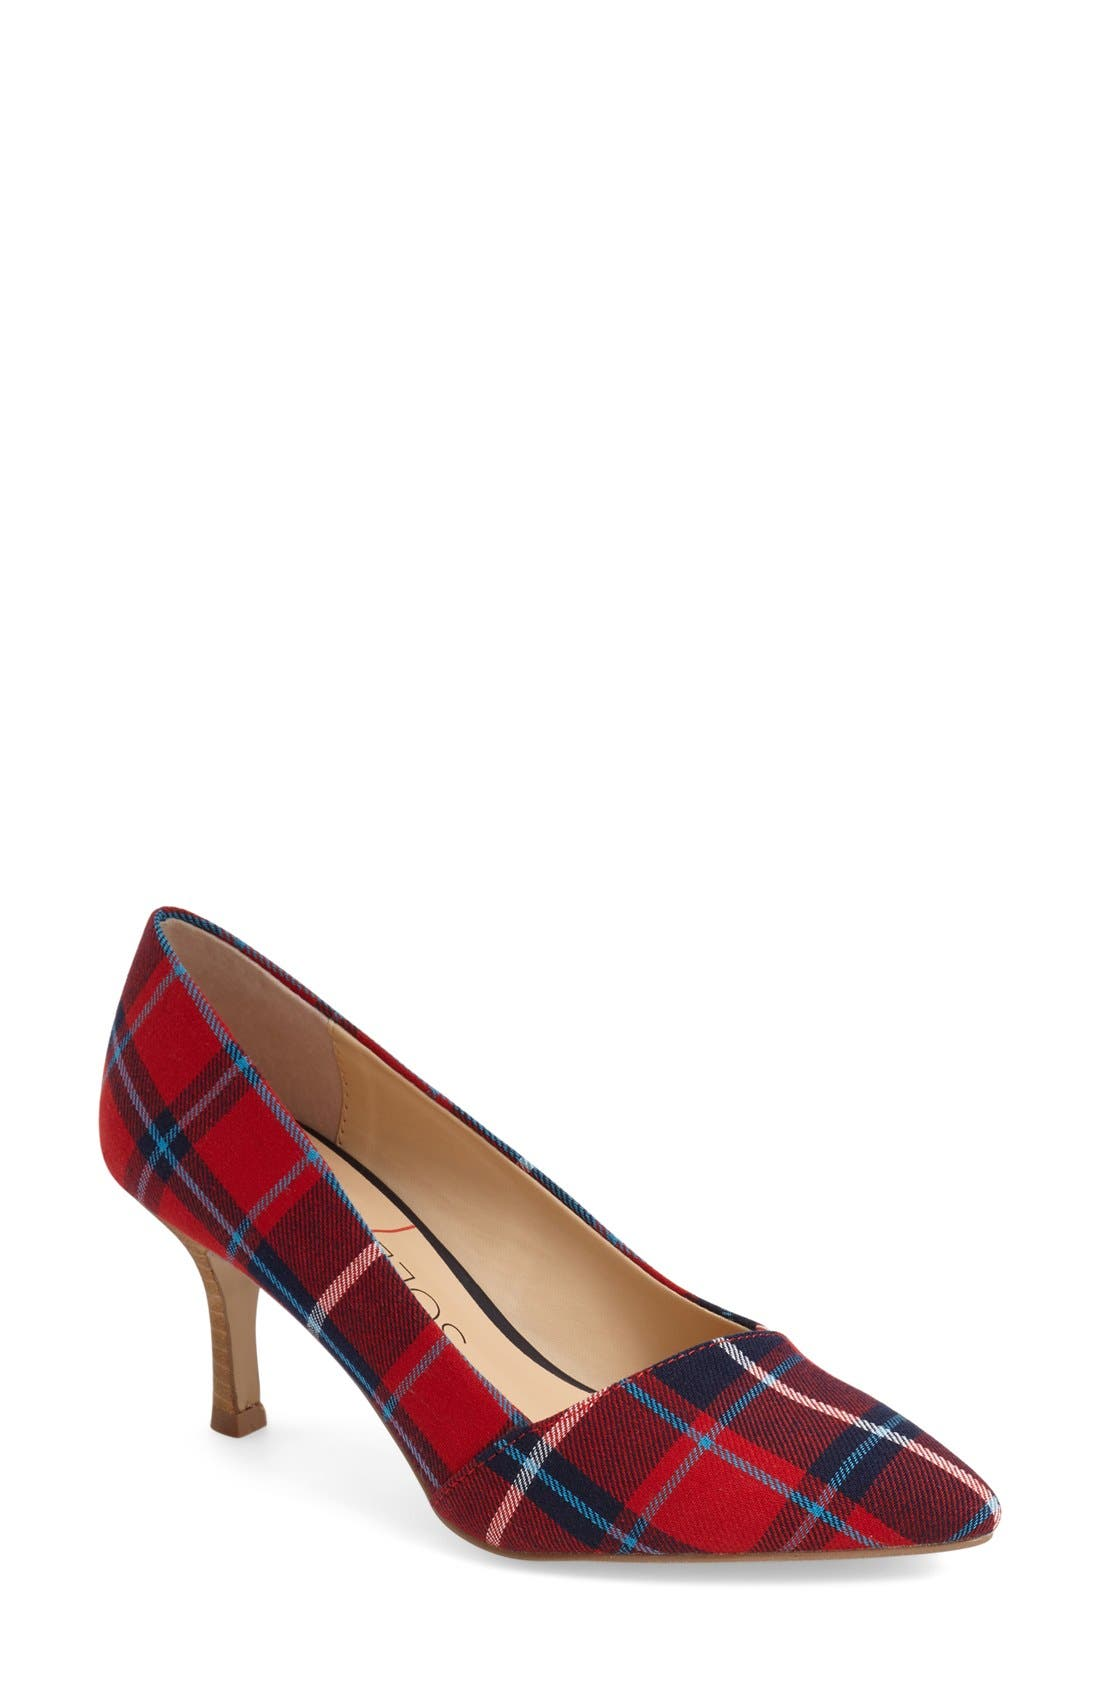 Alternate Image 1 Selected - Sole Society 'Angelica' Pump (Women)